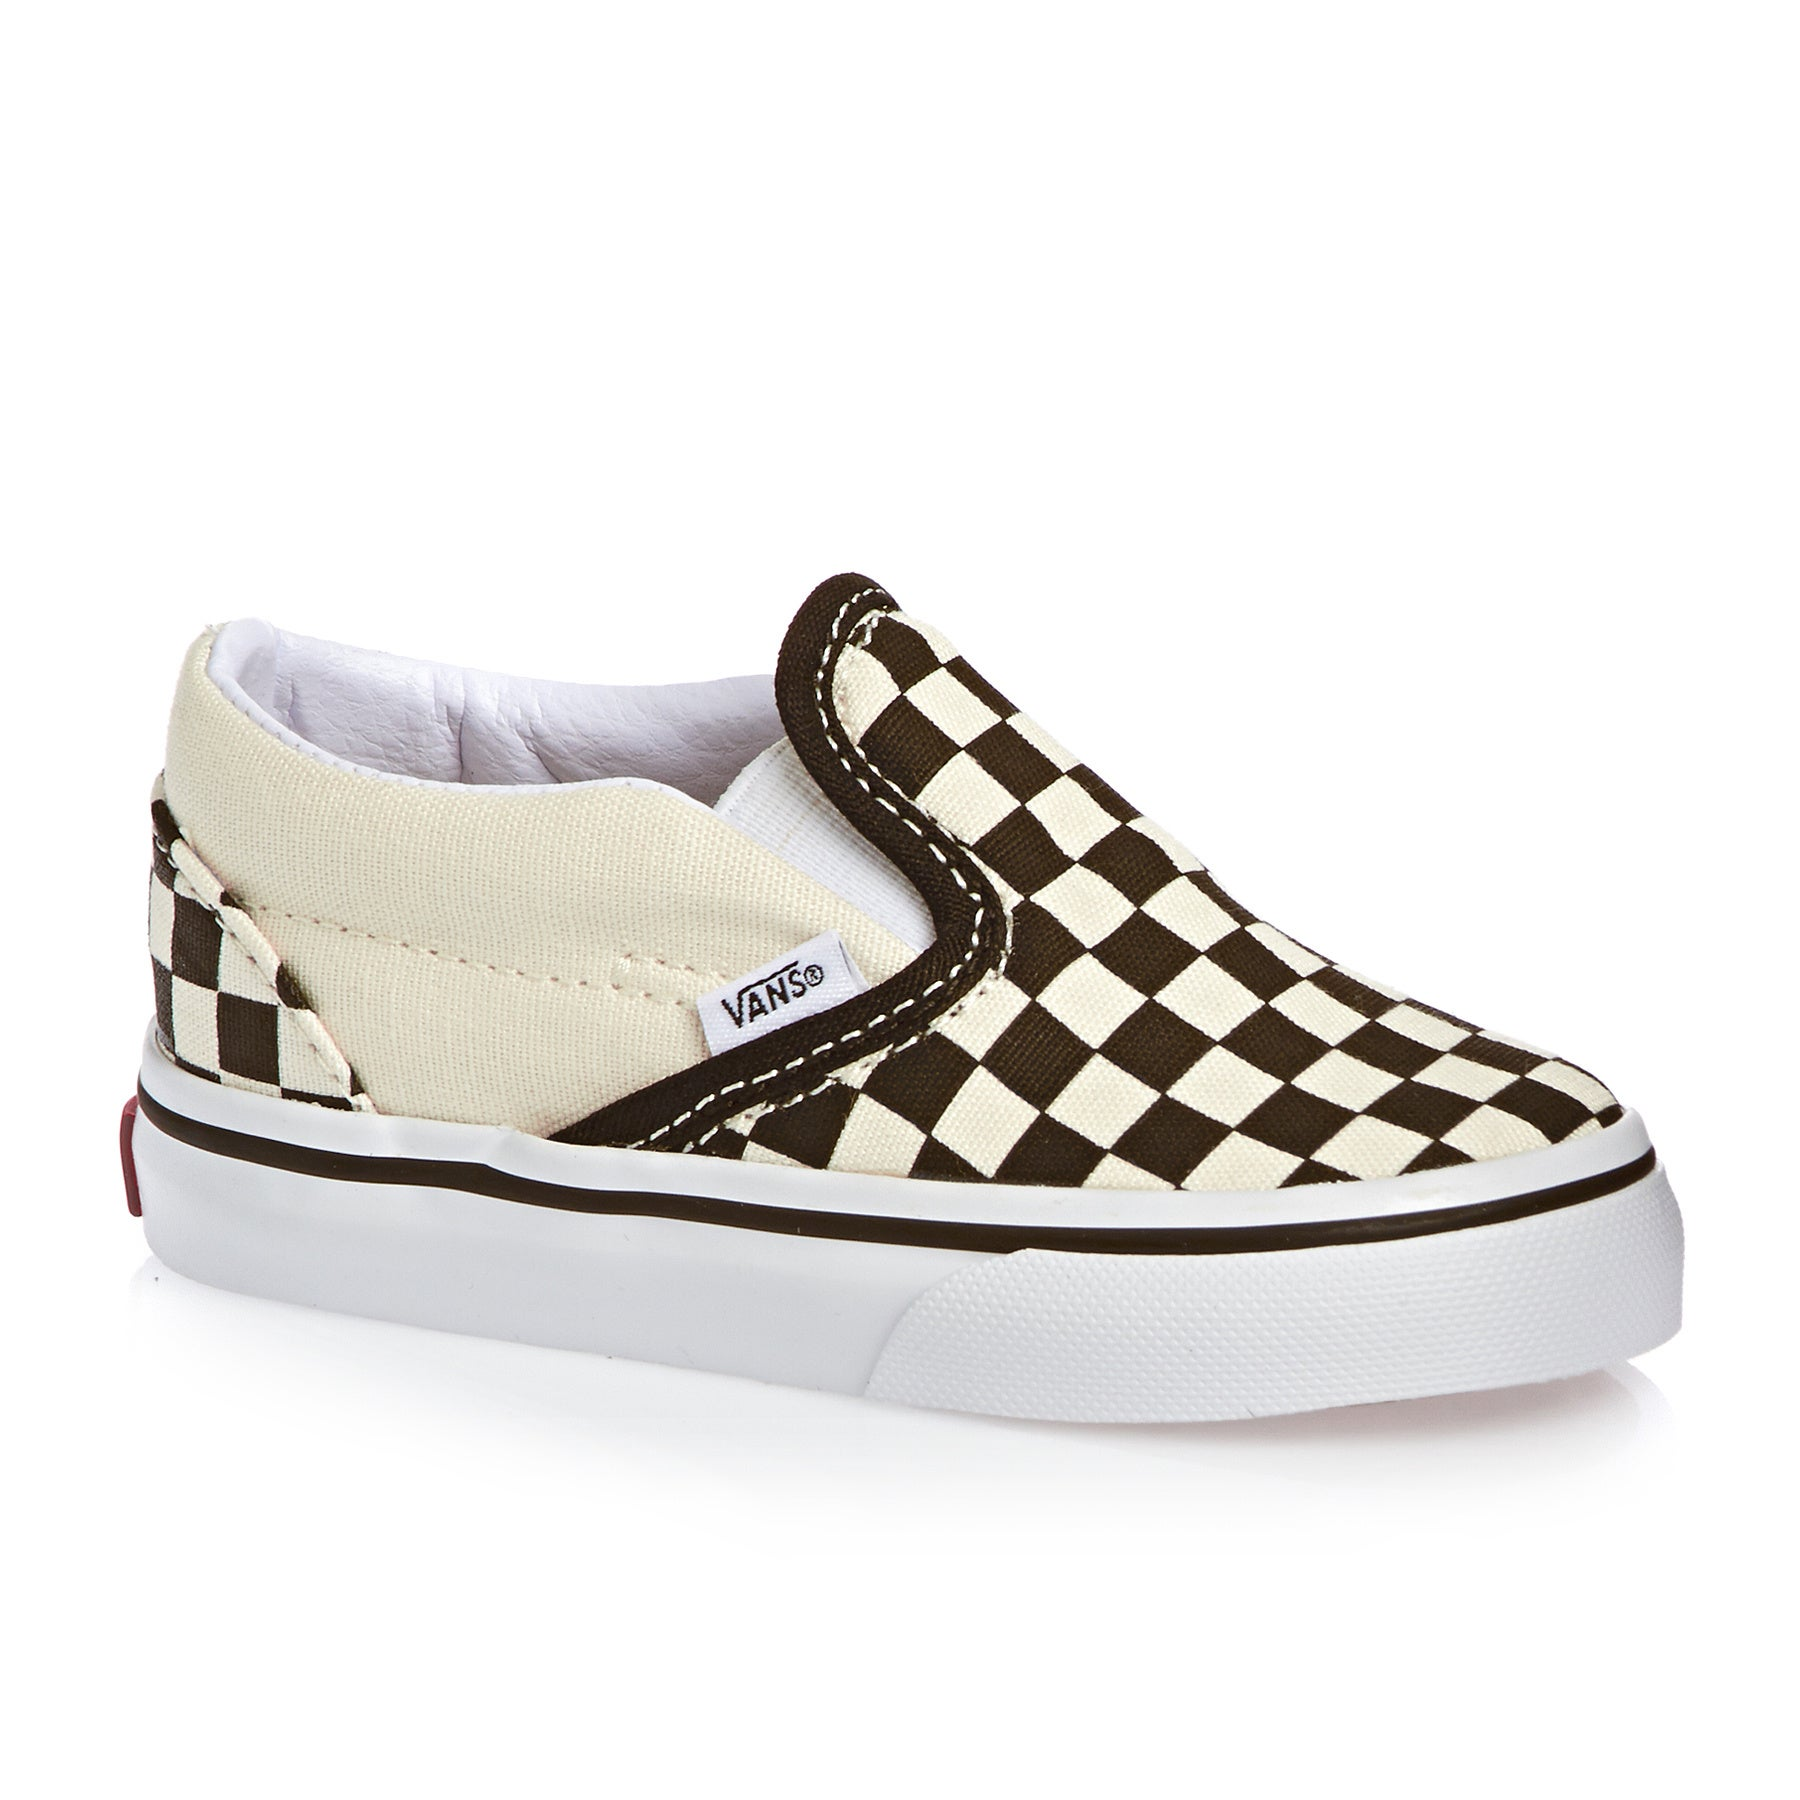 Vans Classic Slip On Kids Toddler Shoes - Black White Checker White